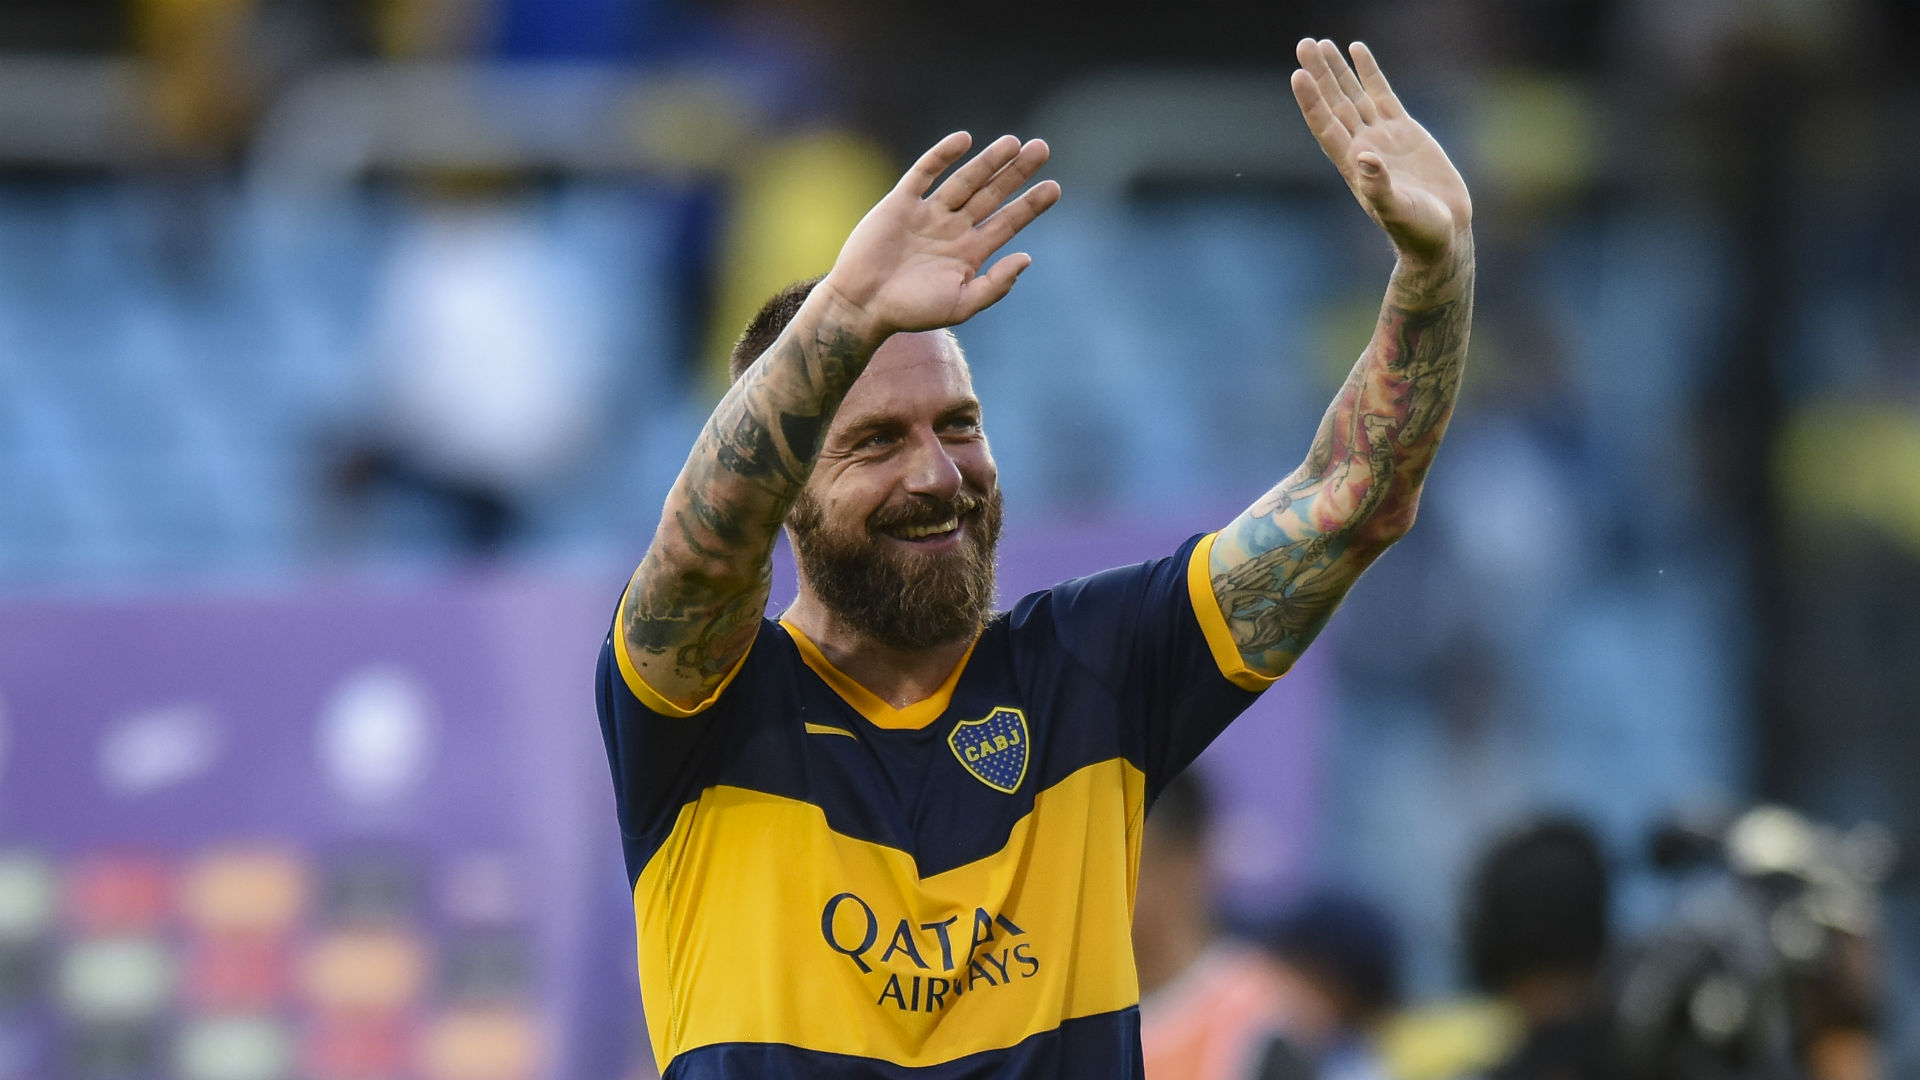 De Rossi leaves Boca and retires from football